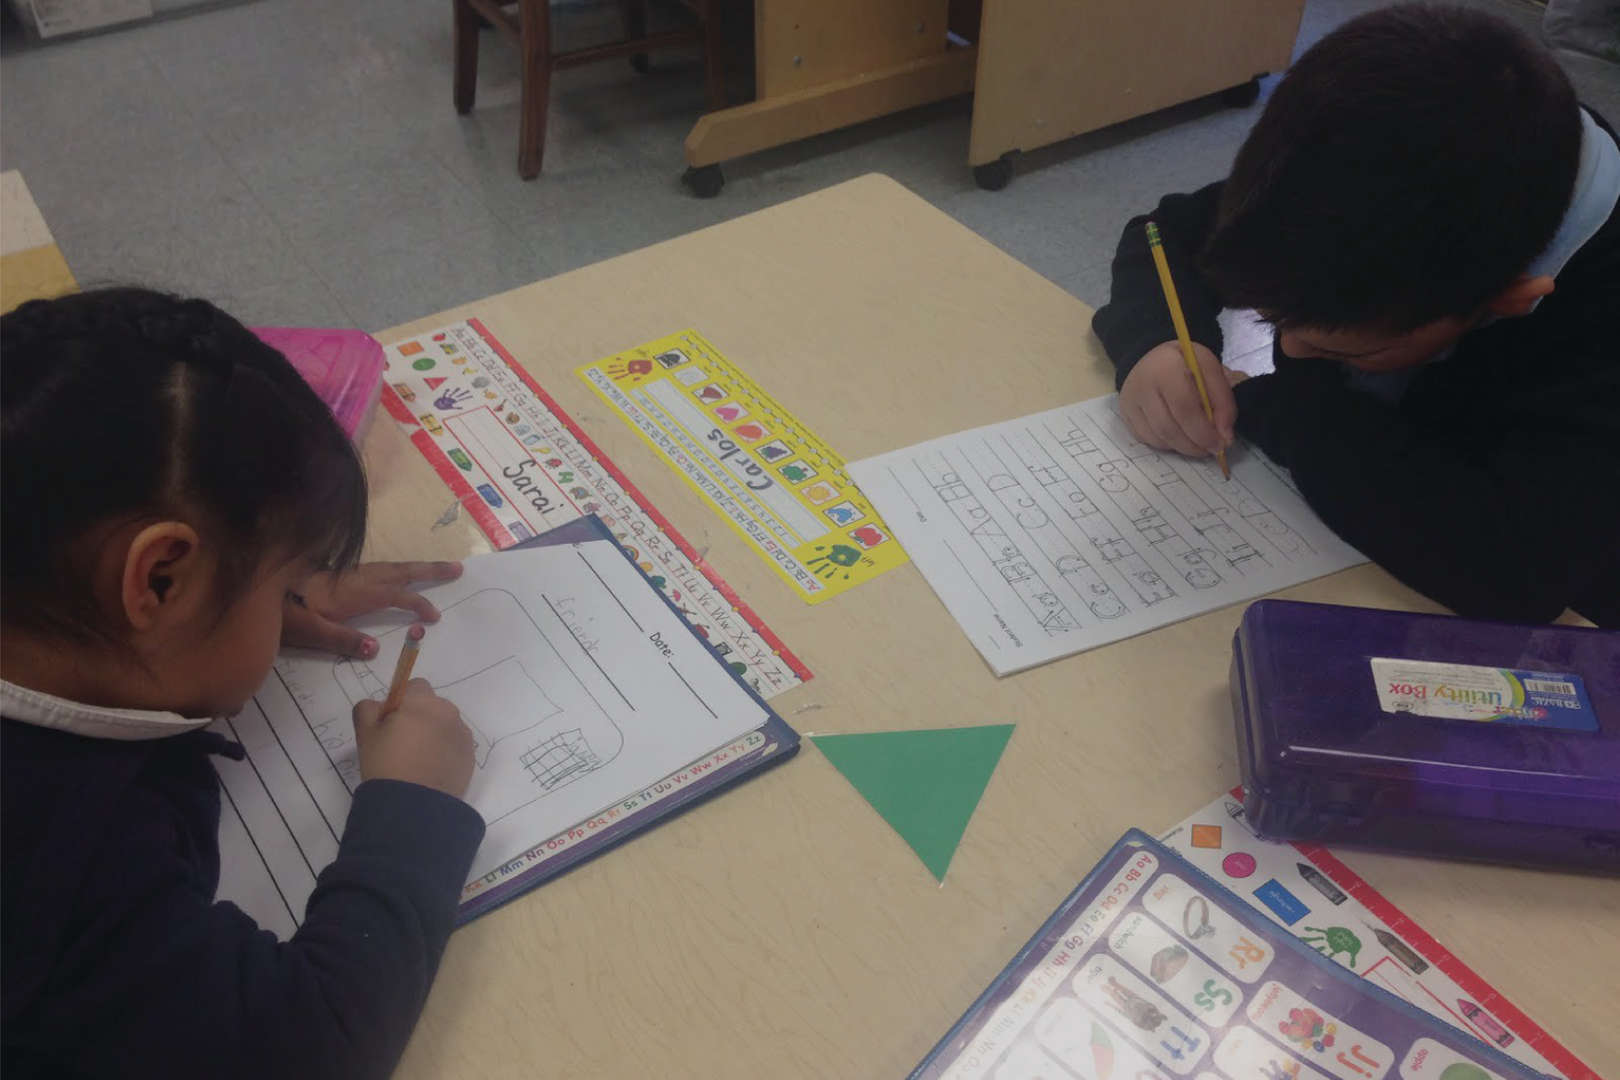 Students working on an assignment